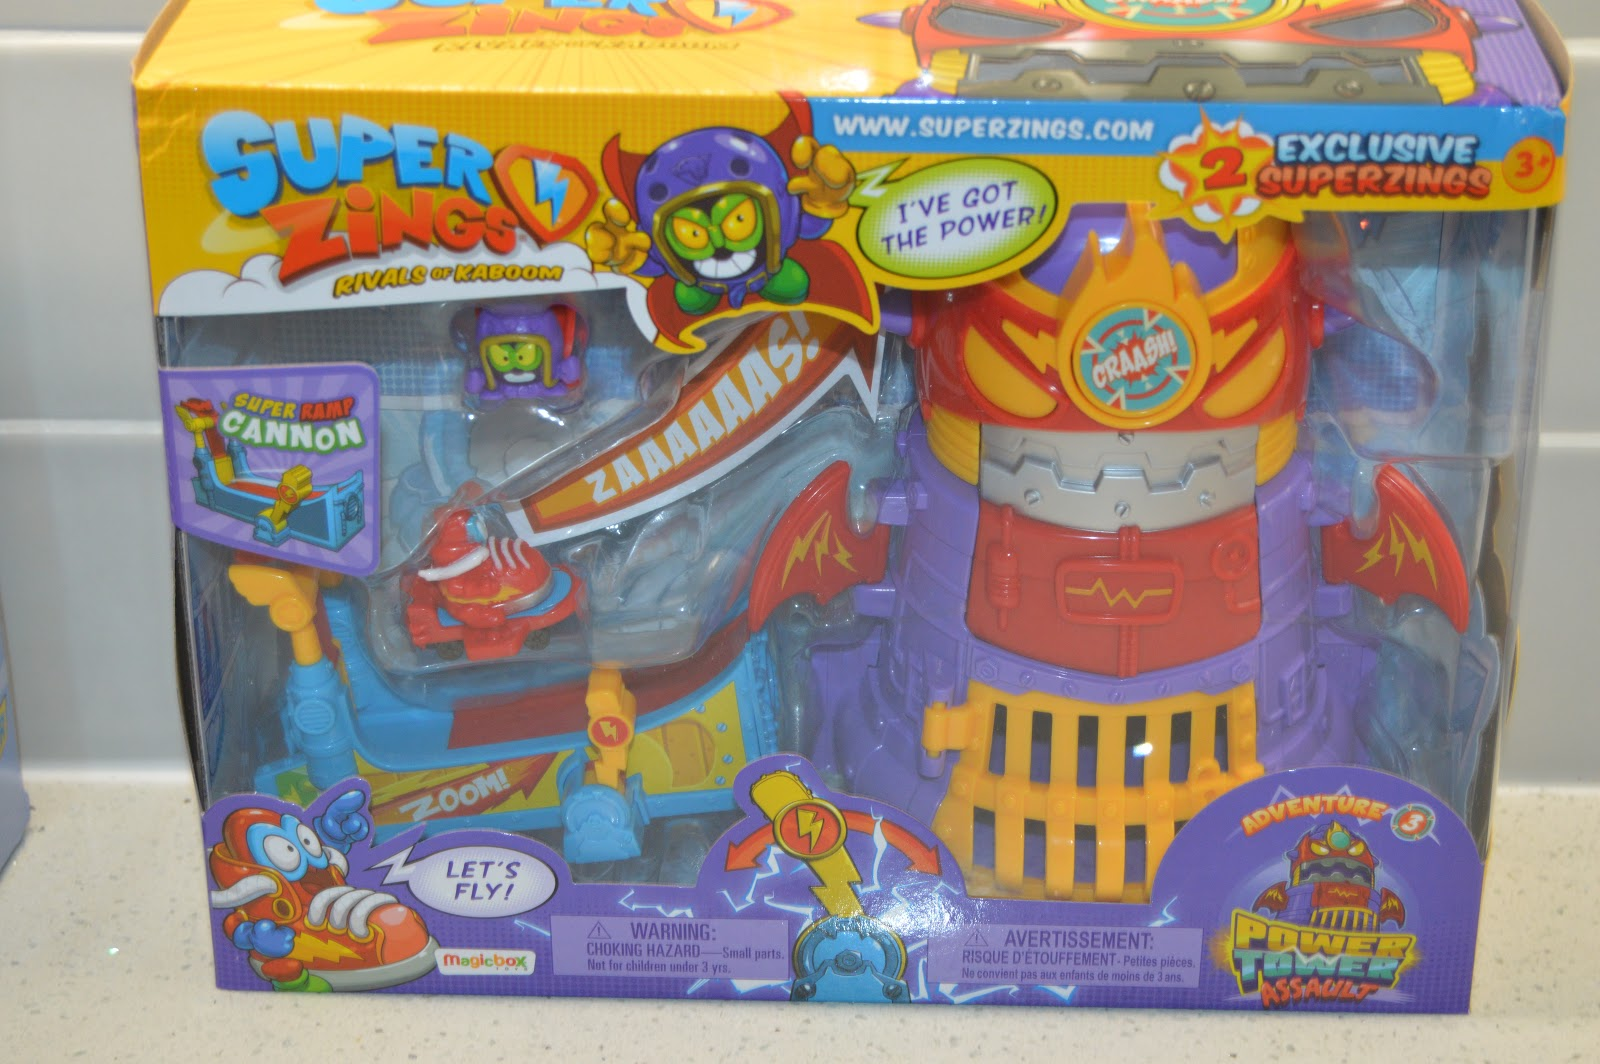 SUPERZINGS - Power Tower Assault Adventure 3 toy